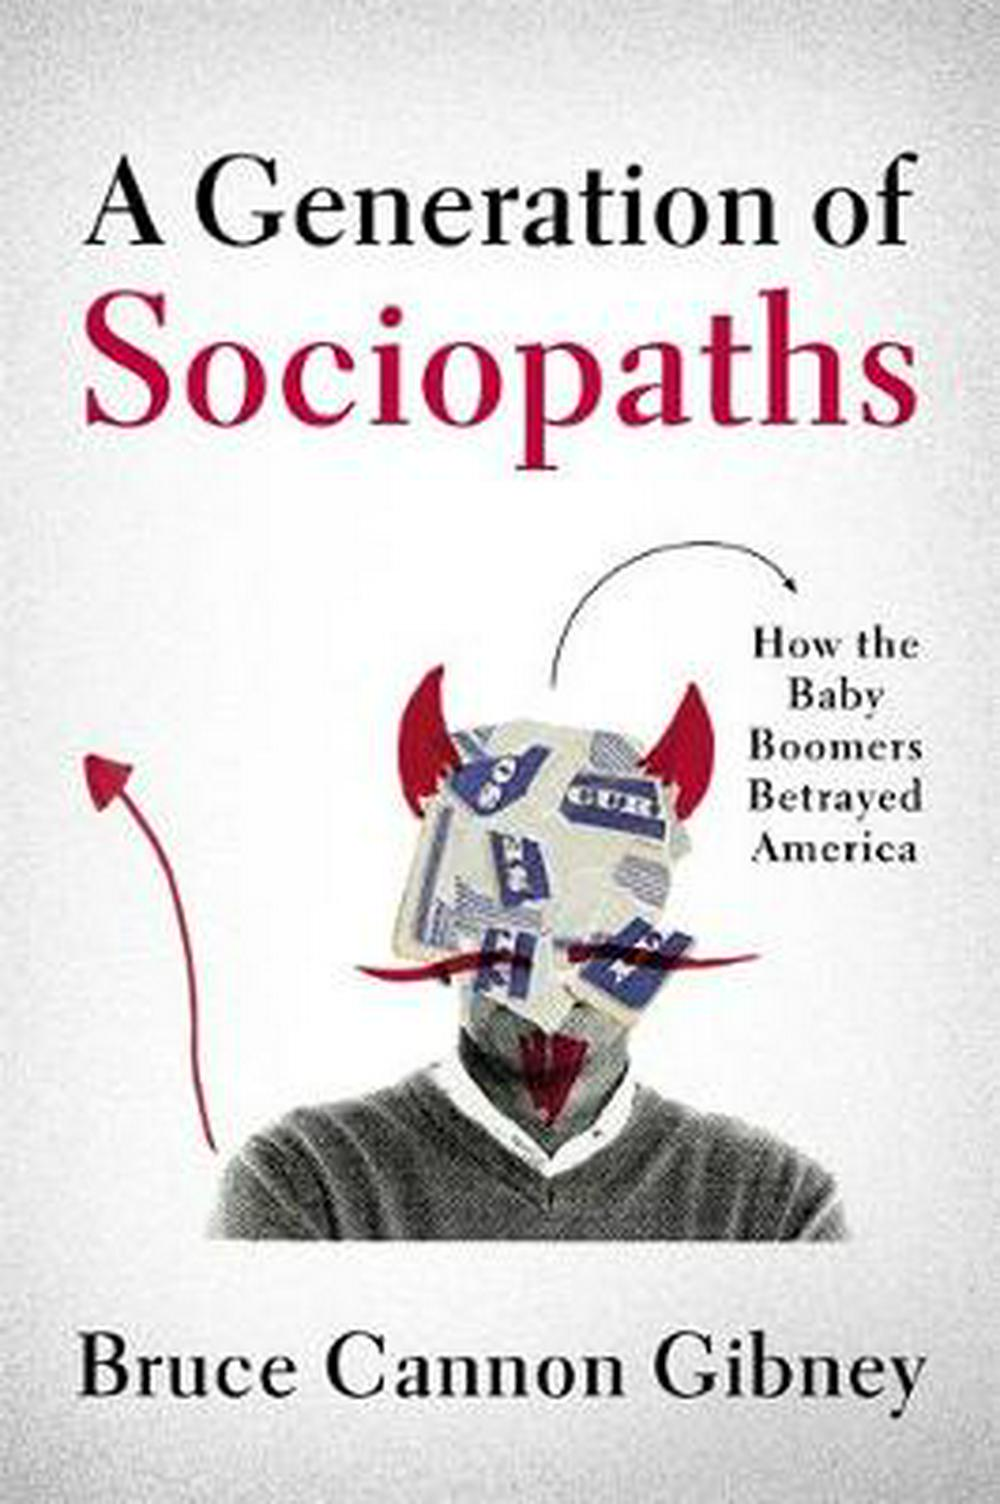 A Generation of SociopathsHow the Baby Boomers Betrayed America by Bruce Cannon Gibney, ISBN: 9780316395786